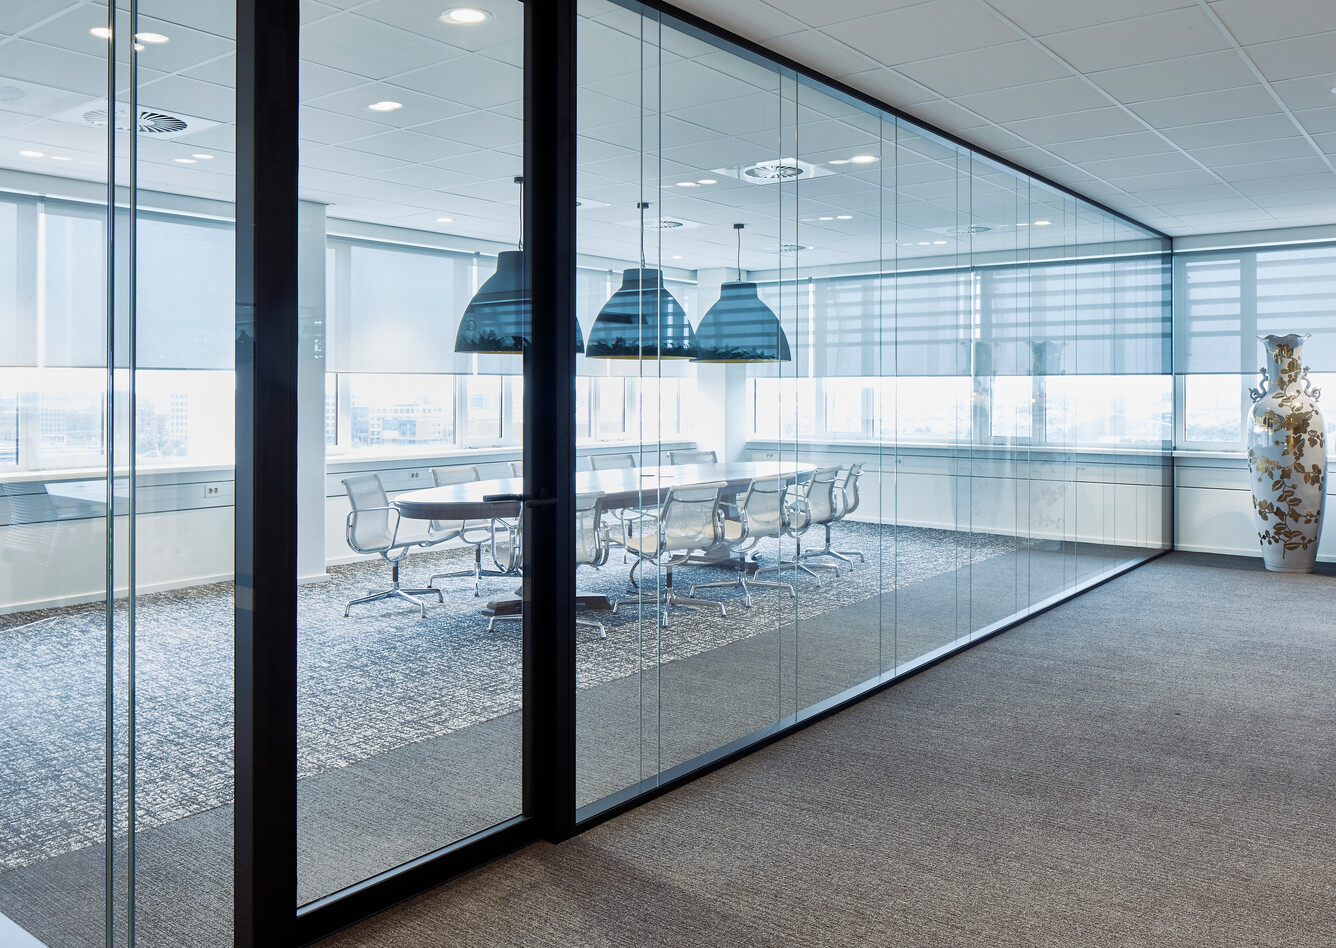 Royal Ahrend office project interior view of BDO in The Hague MR0112638